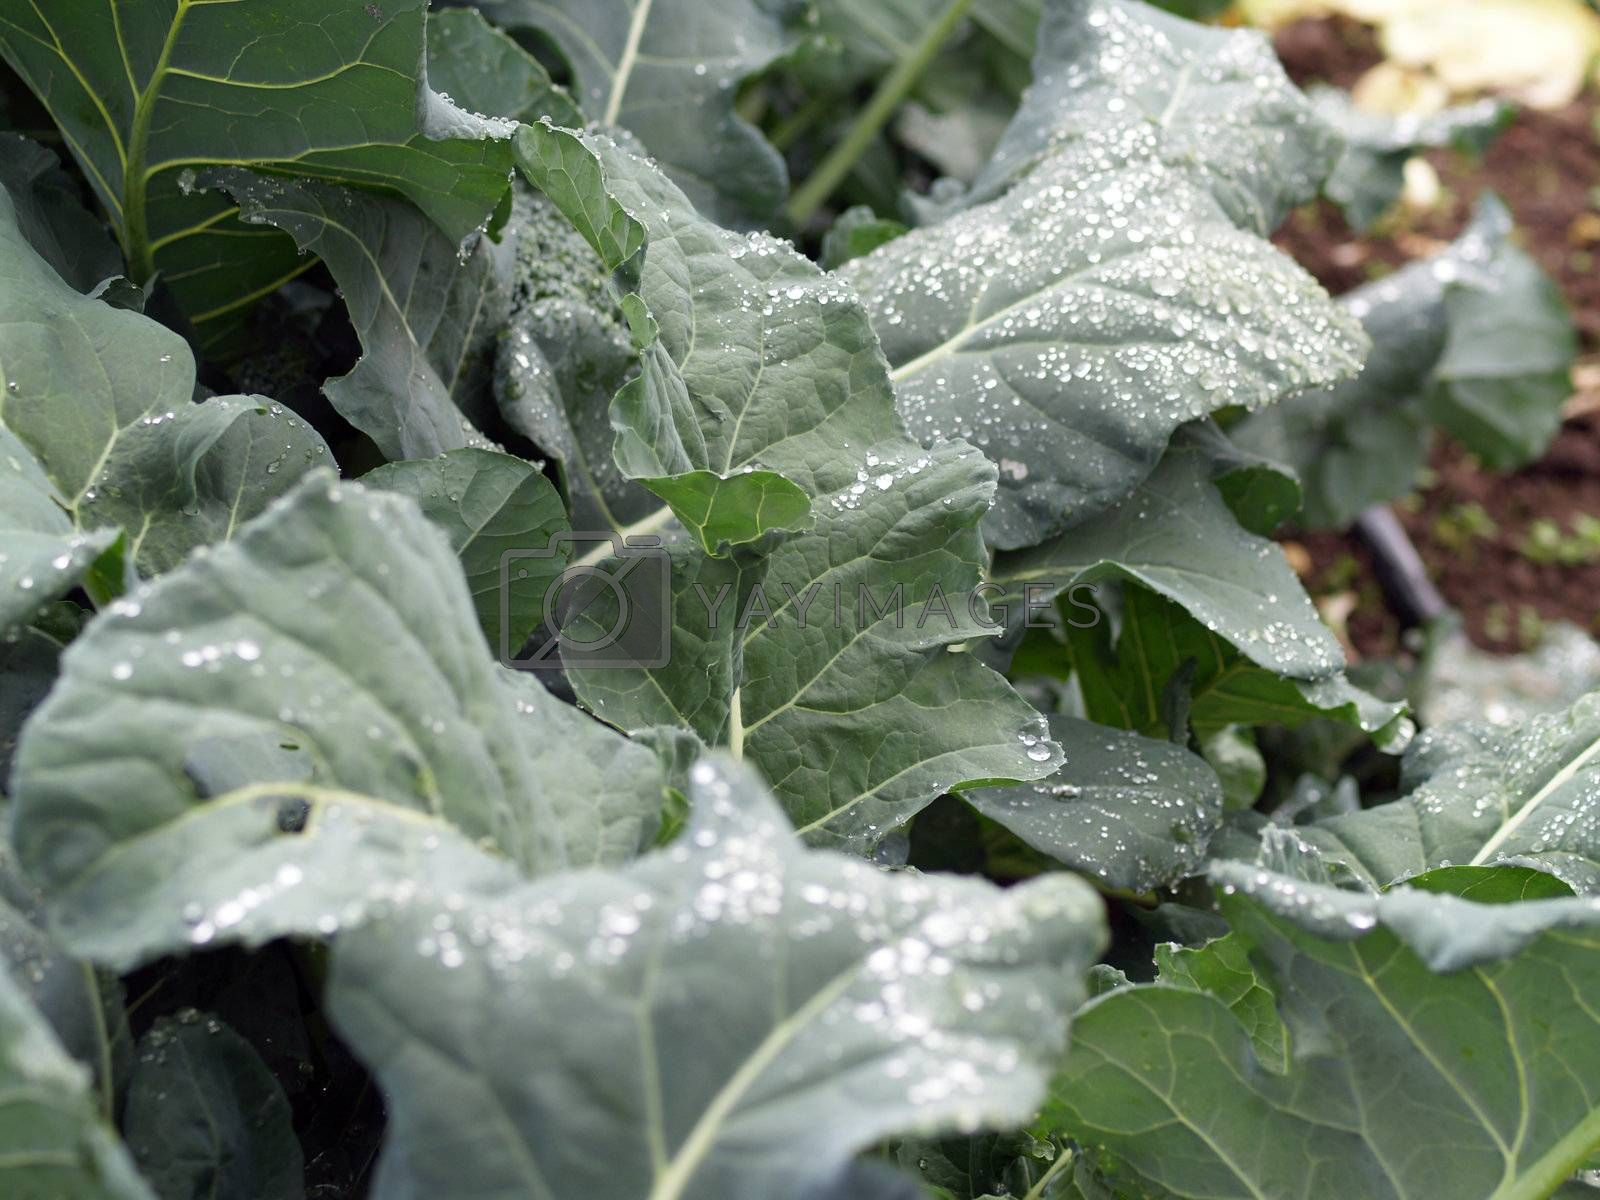 Row of kale plants with water drops on leaves